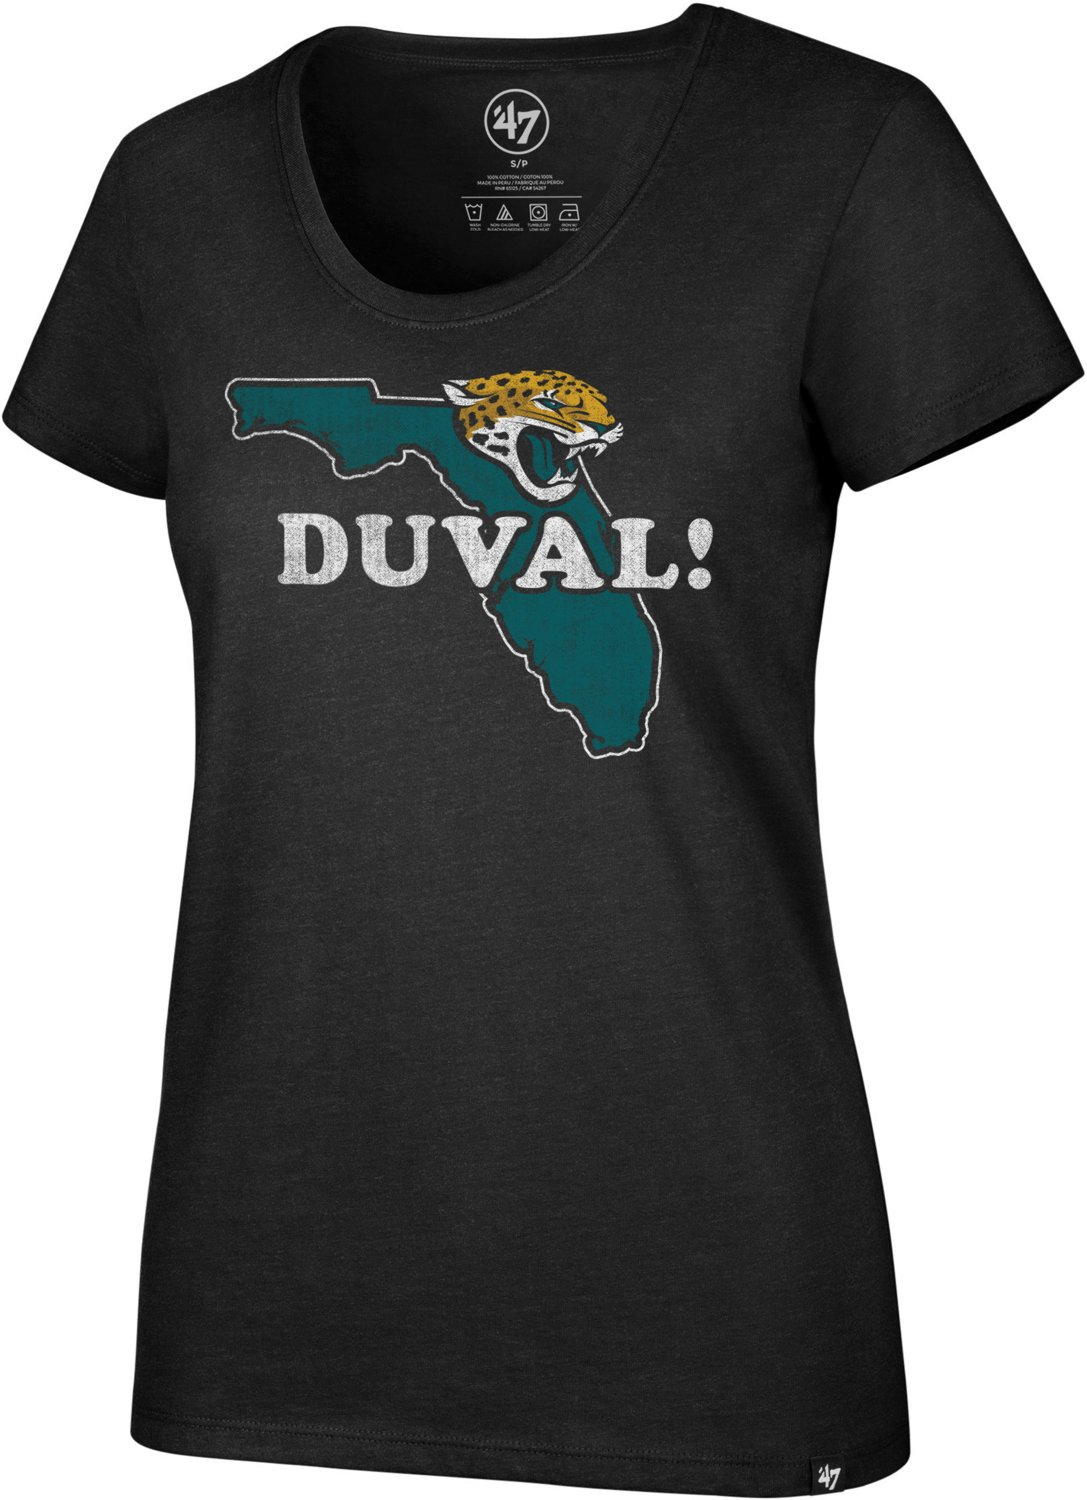 brand new 71697 56ab2 '47 Jacksonville Jaguars Women's Duval Scoop Neck T-shirt